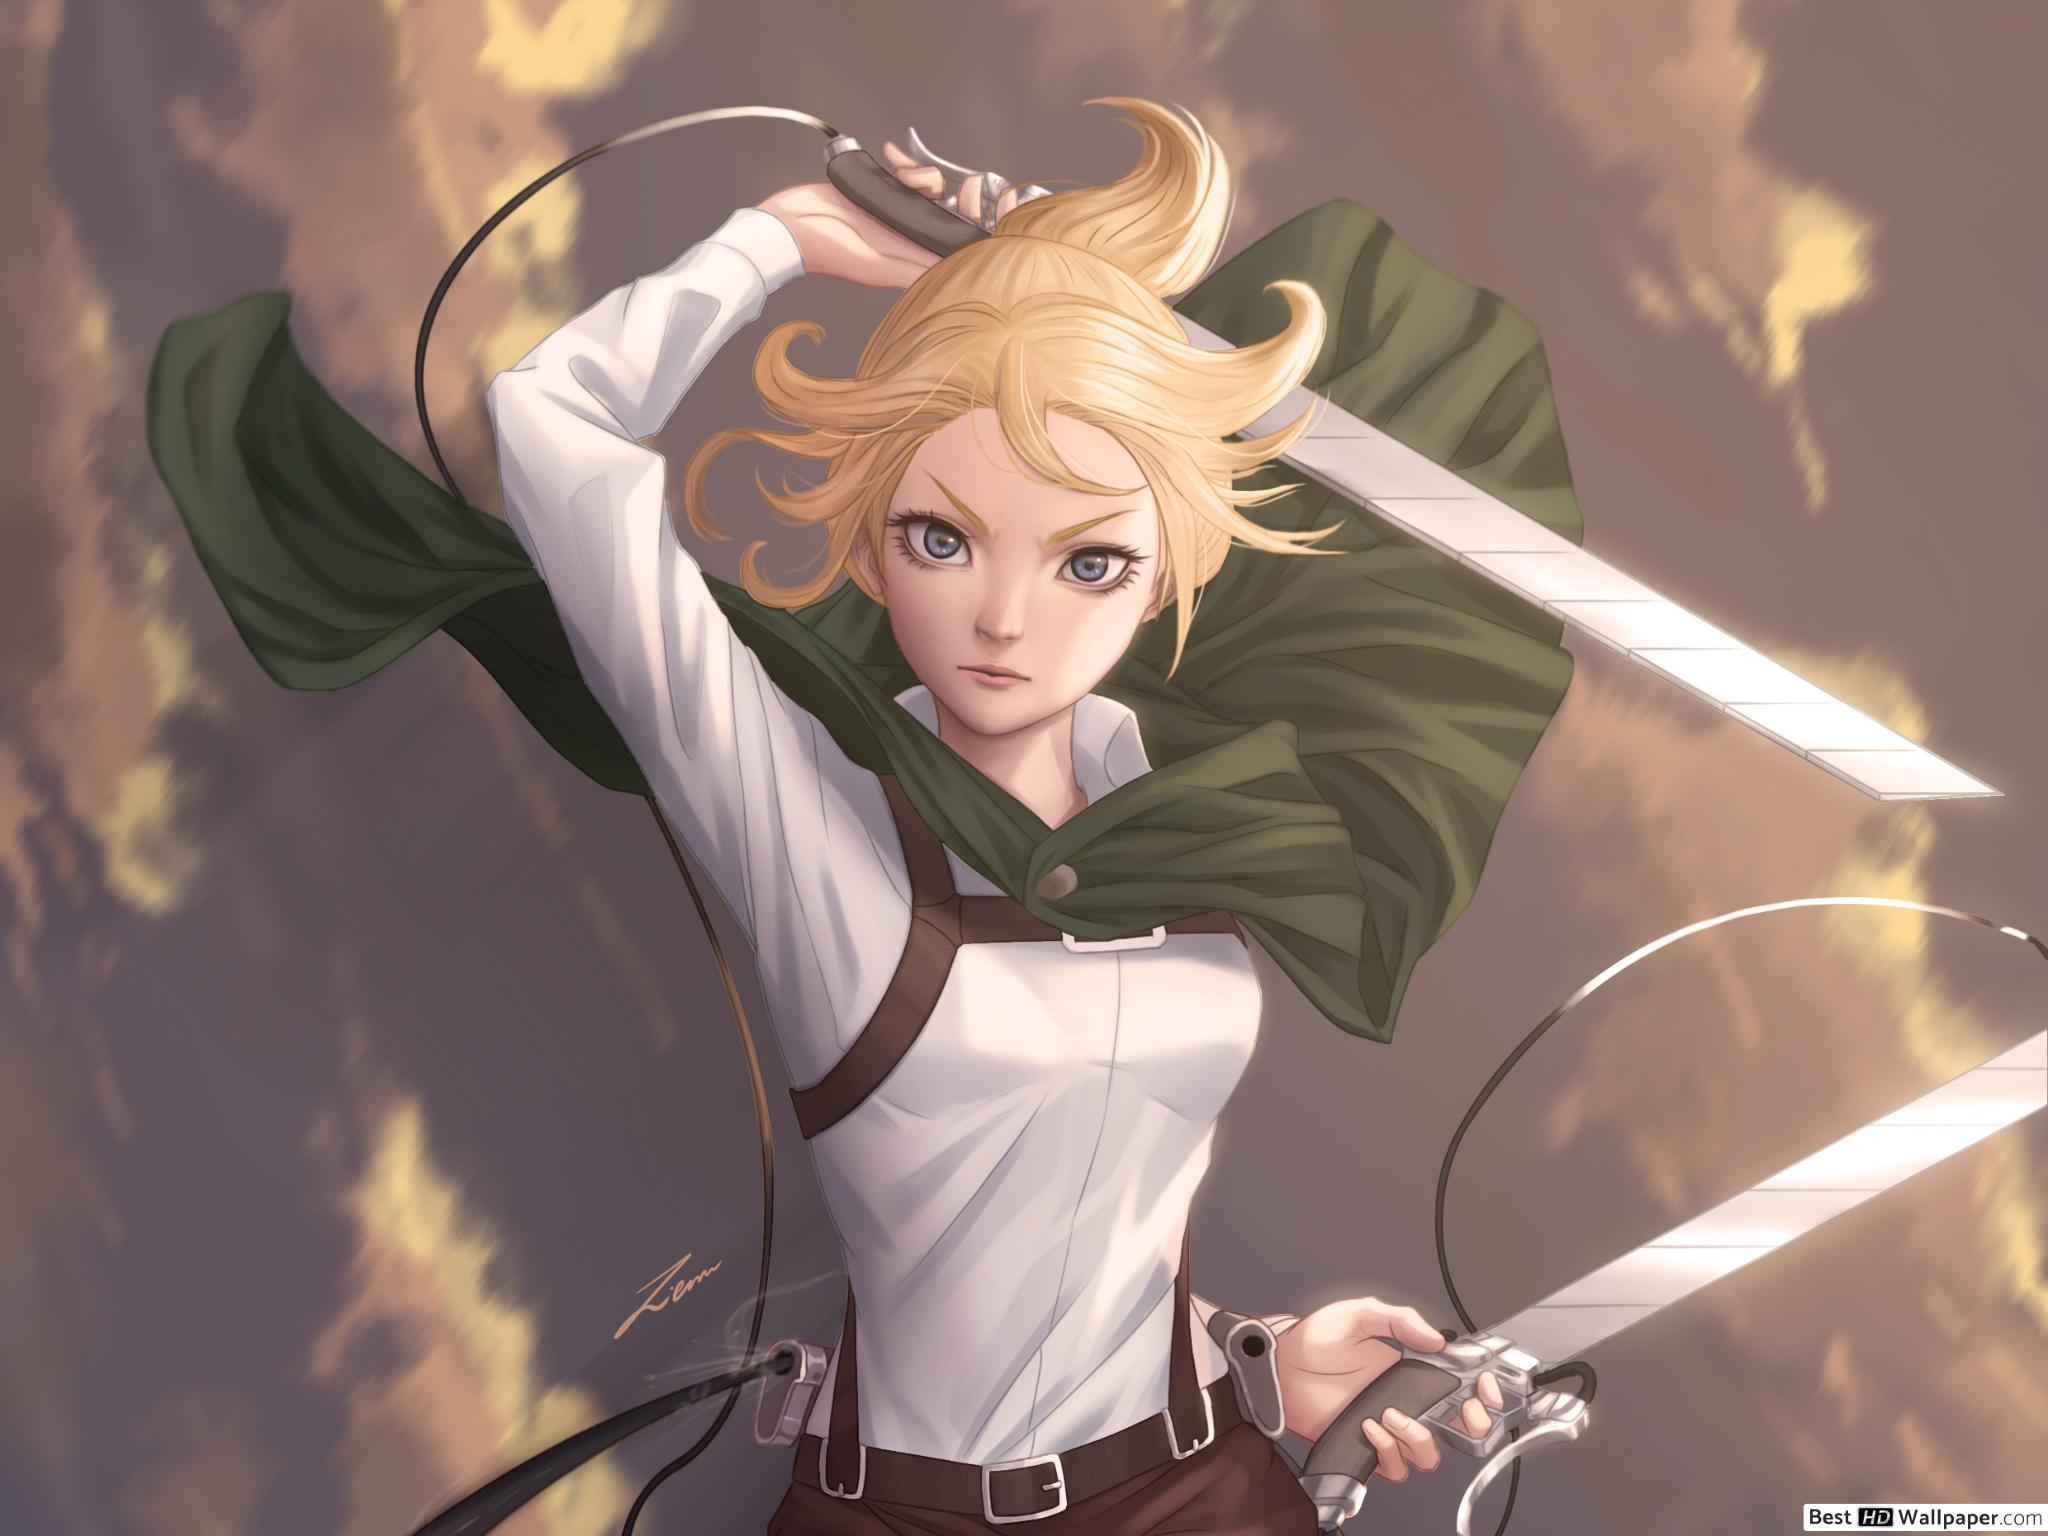 Standard Attack On Titan 1122646 Hd Wallpaper Backgrounds Download